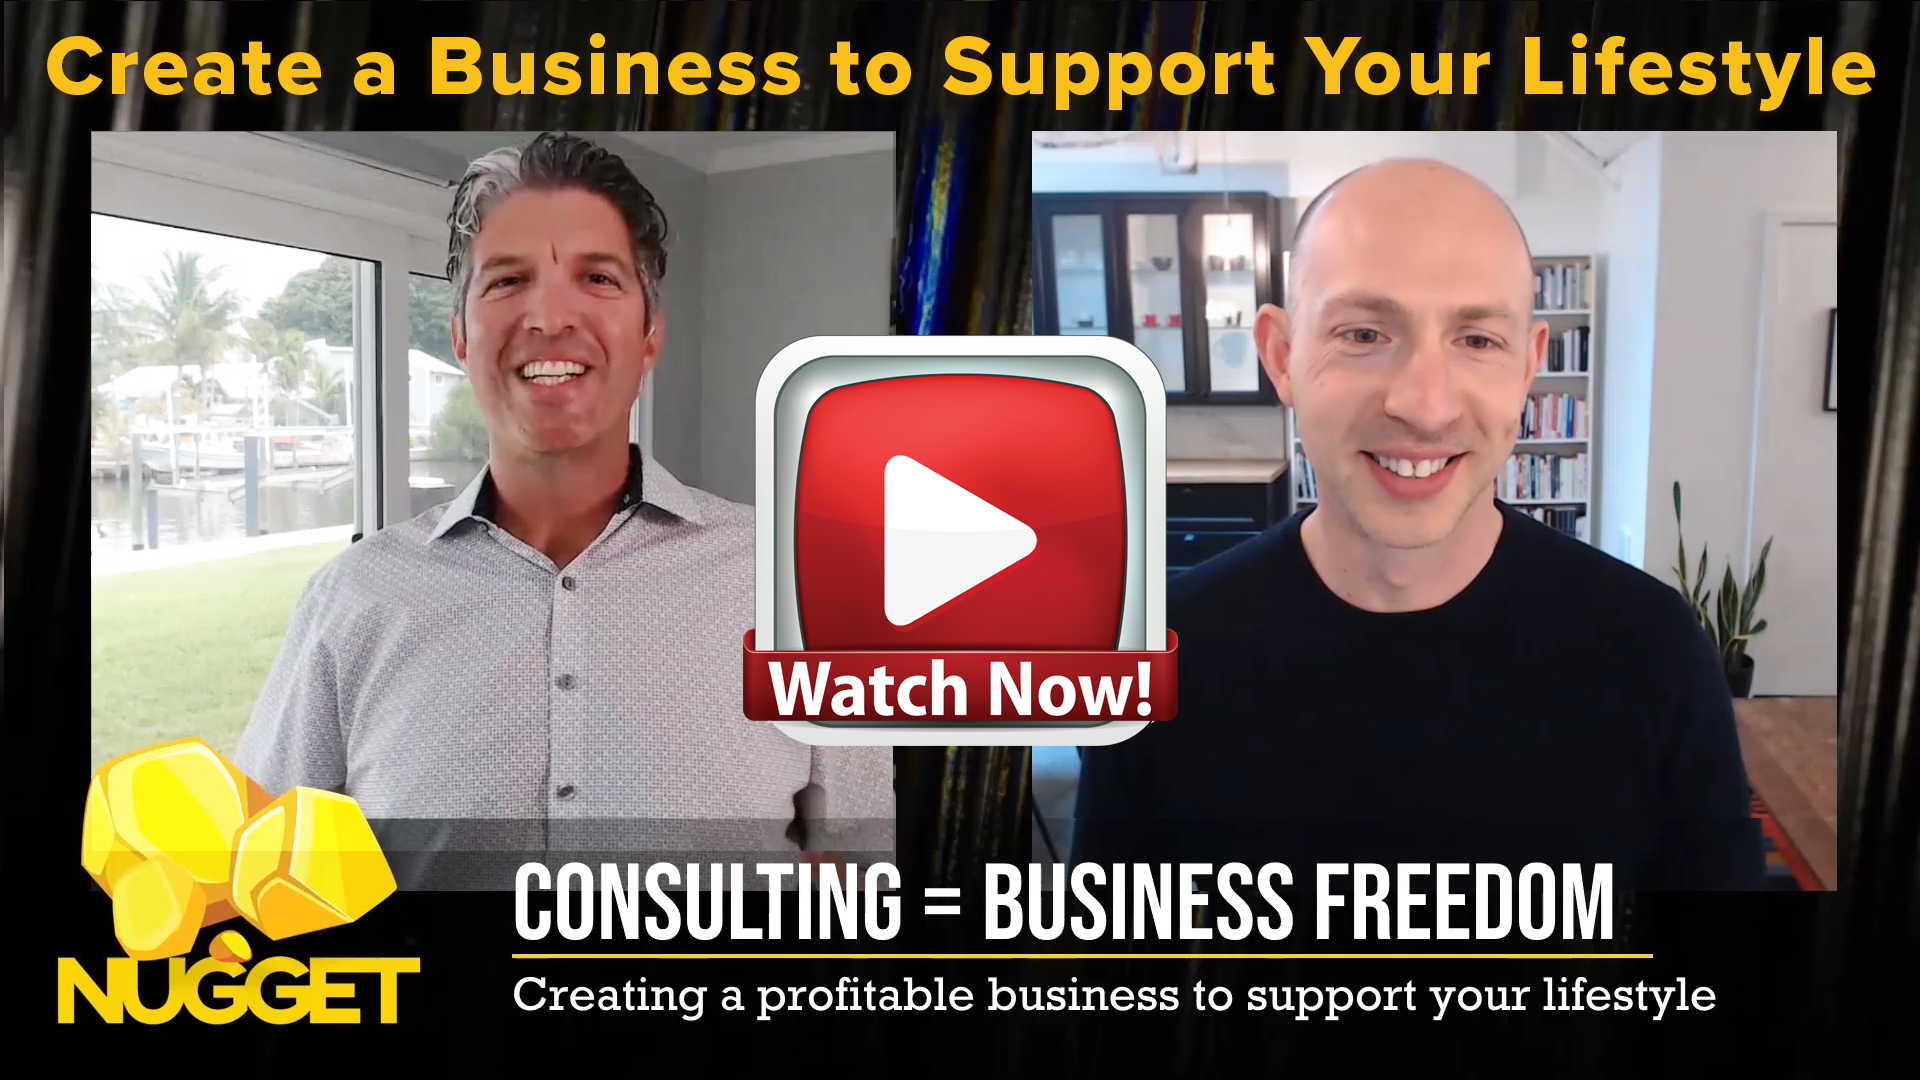 Creating a Business to Support Your Lifestyle